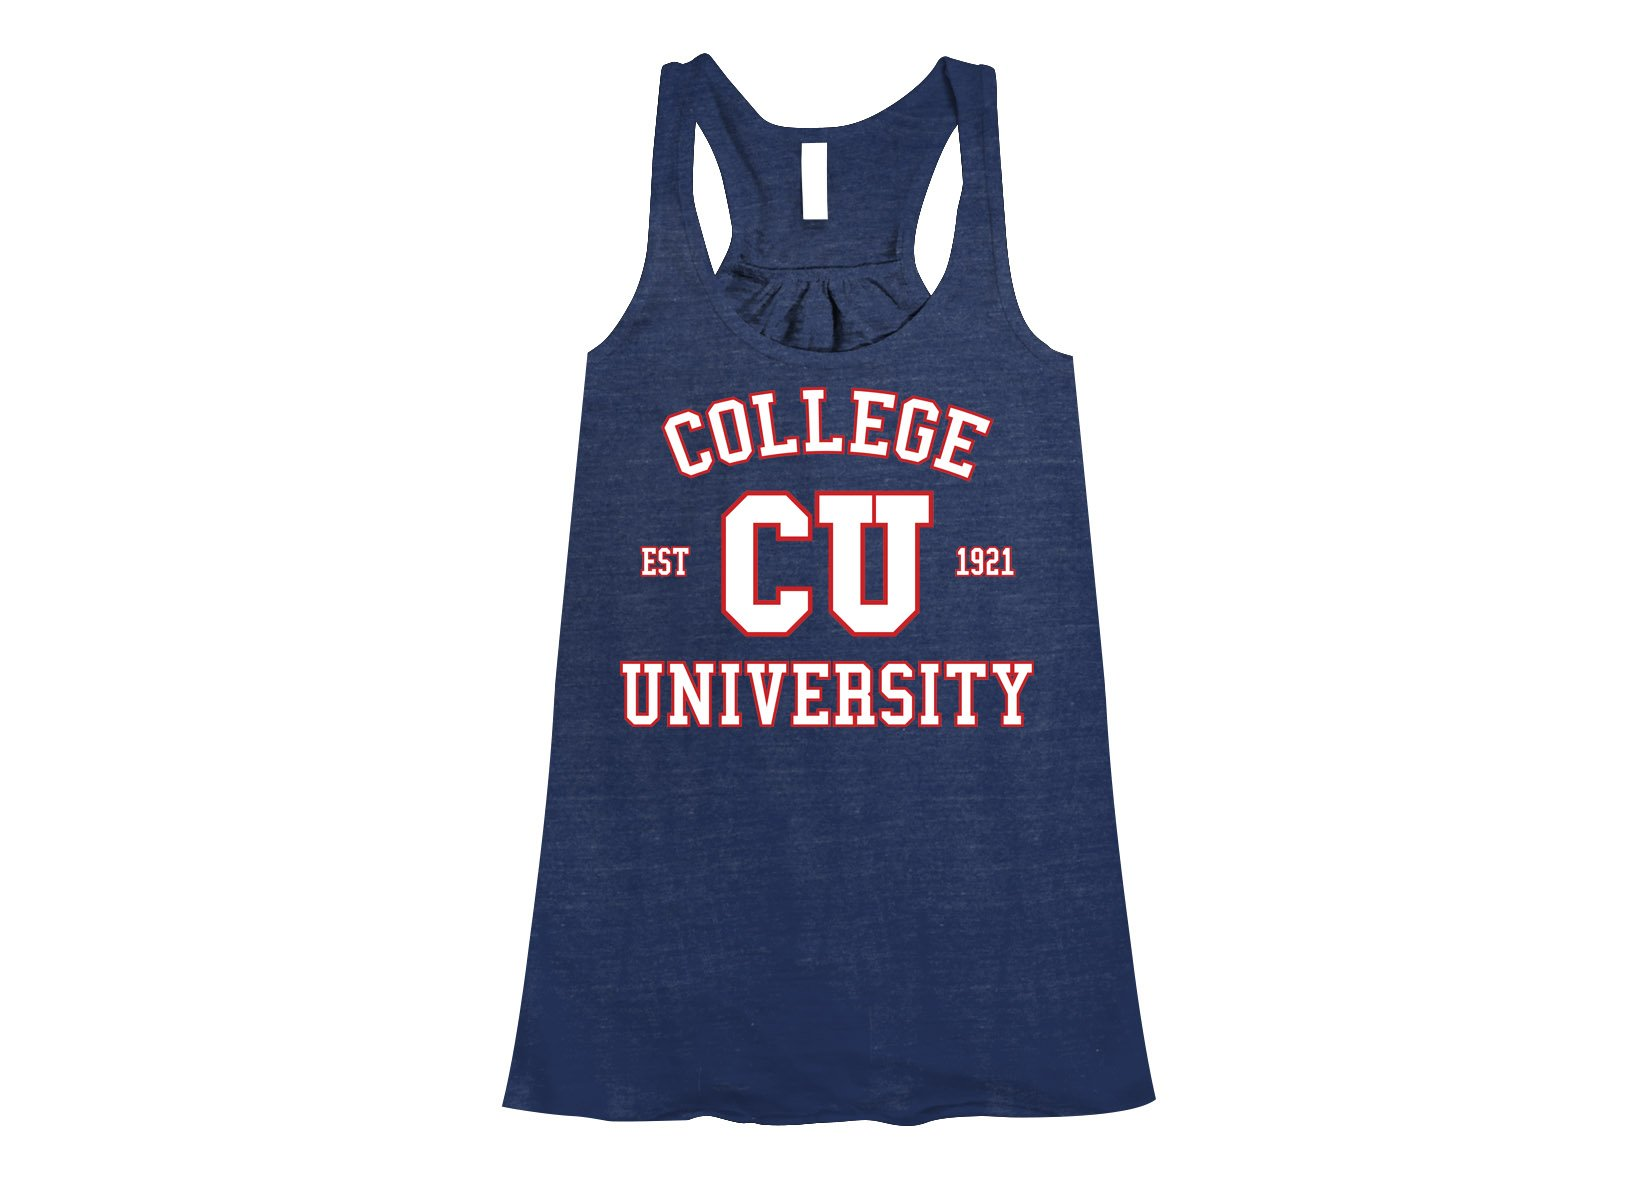 College University on Womens Tanks T-Shirt